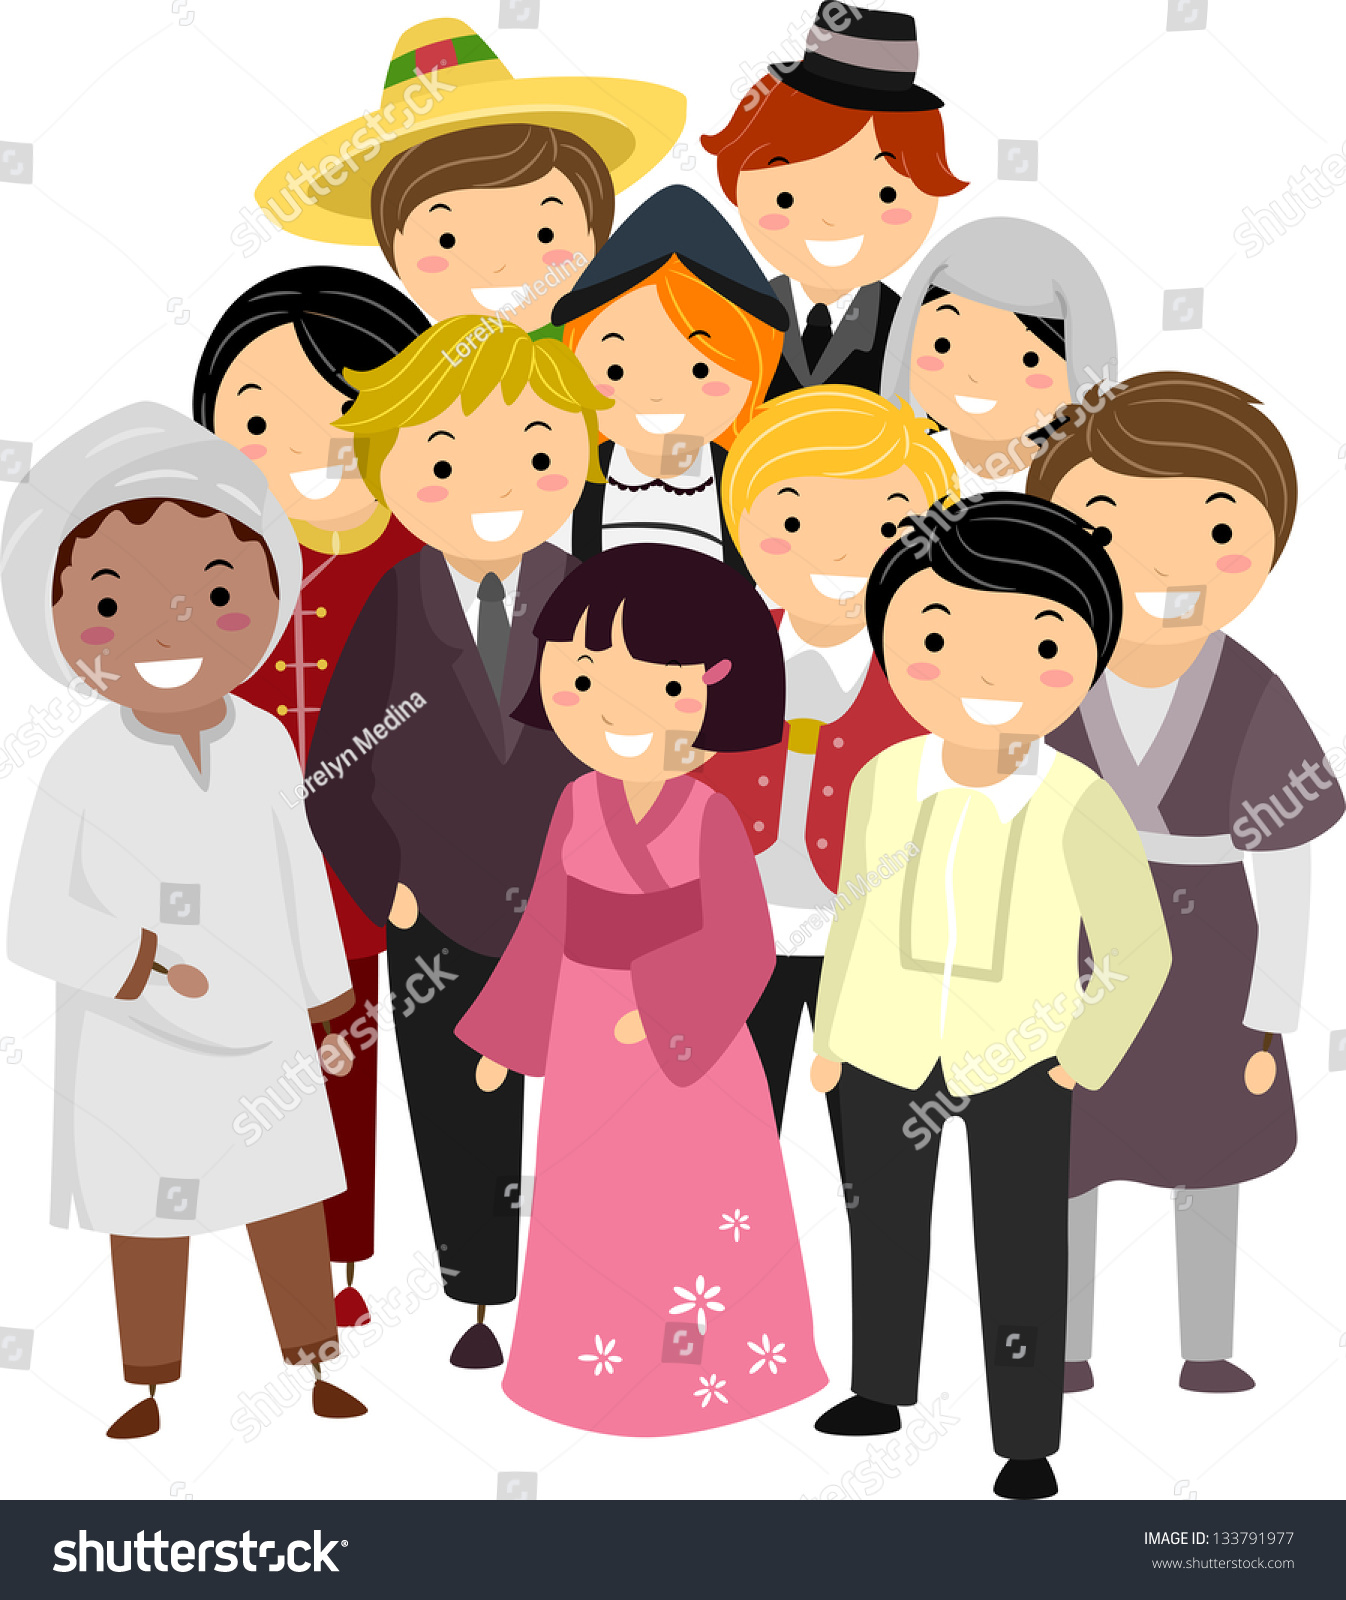 http://image.shutterstock.com/z/stock-vector-illustration-of-people-with-different-nationalities-wearing-their-national-costumes-133791977.jpg